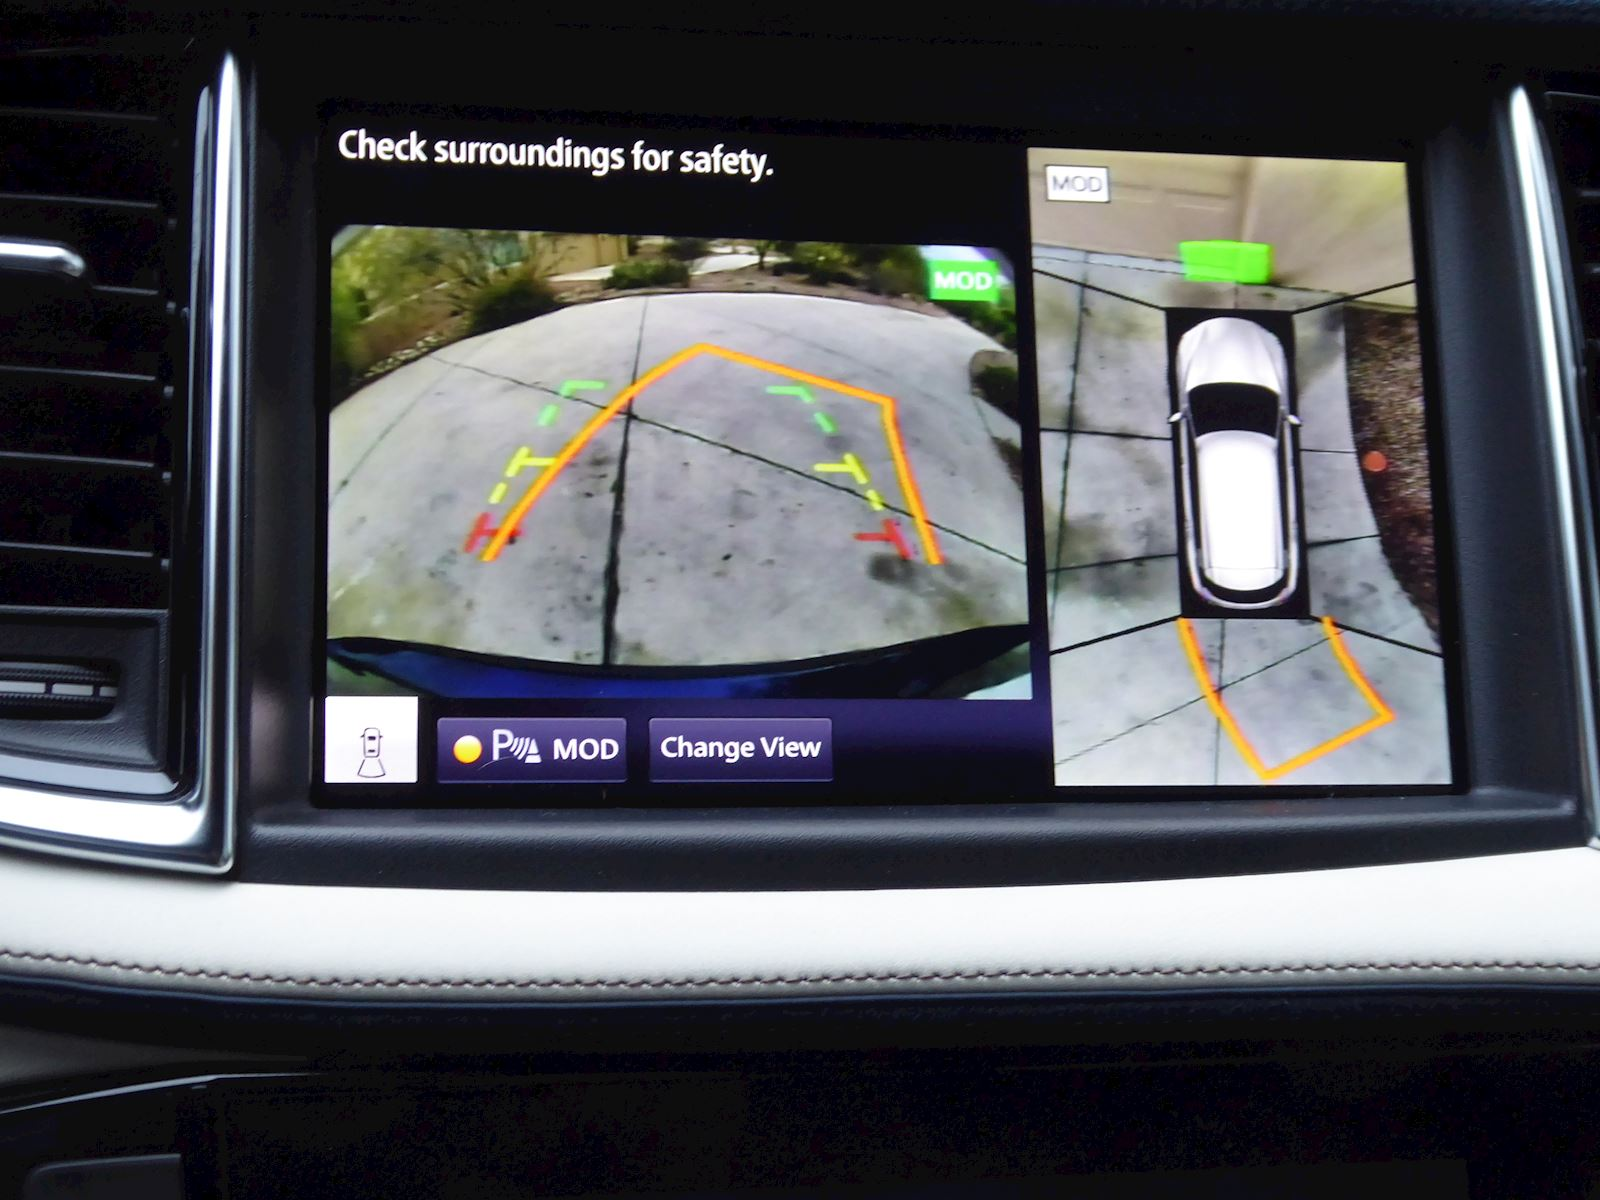 2020 Infiniti QX50 backup camera for safety